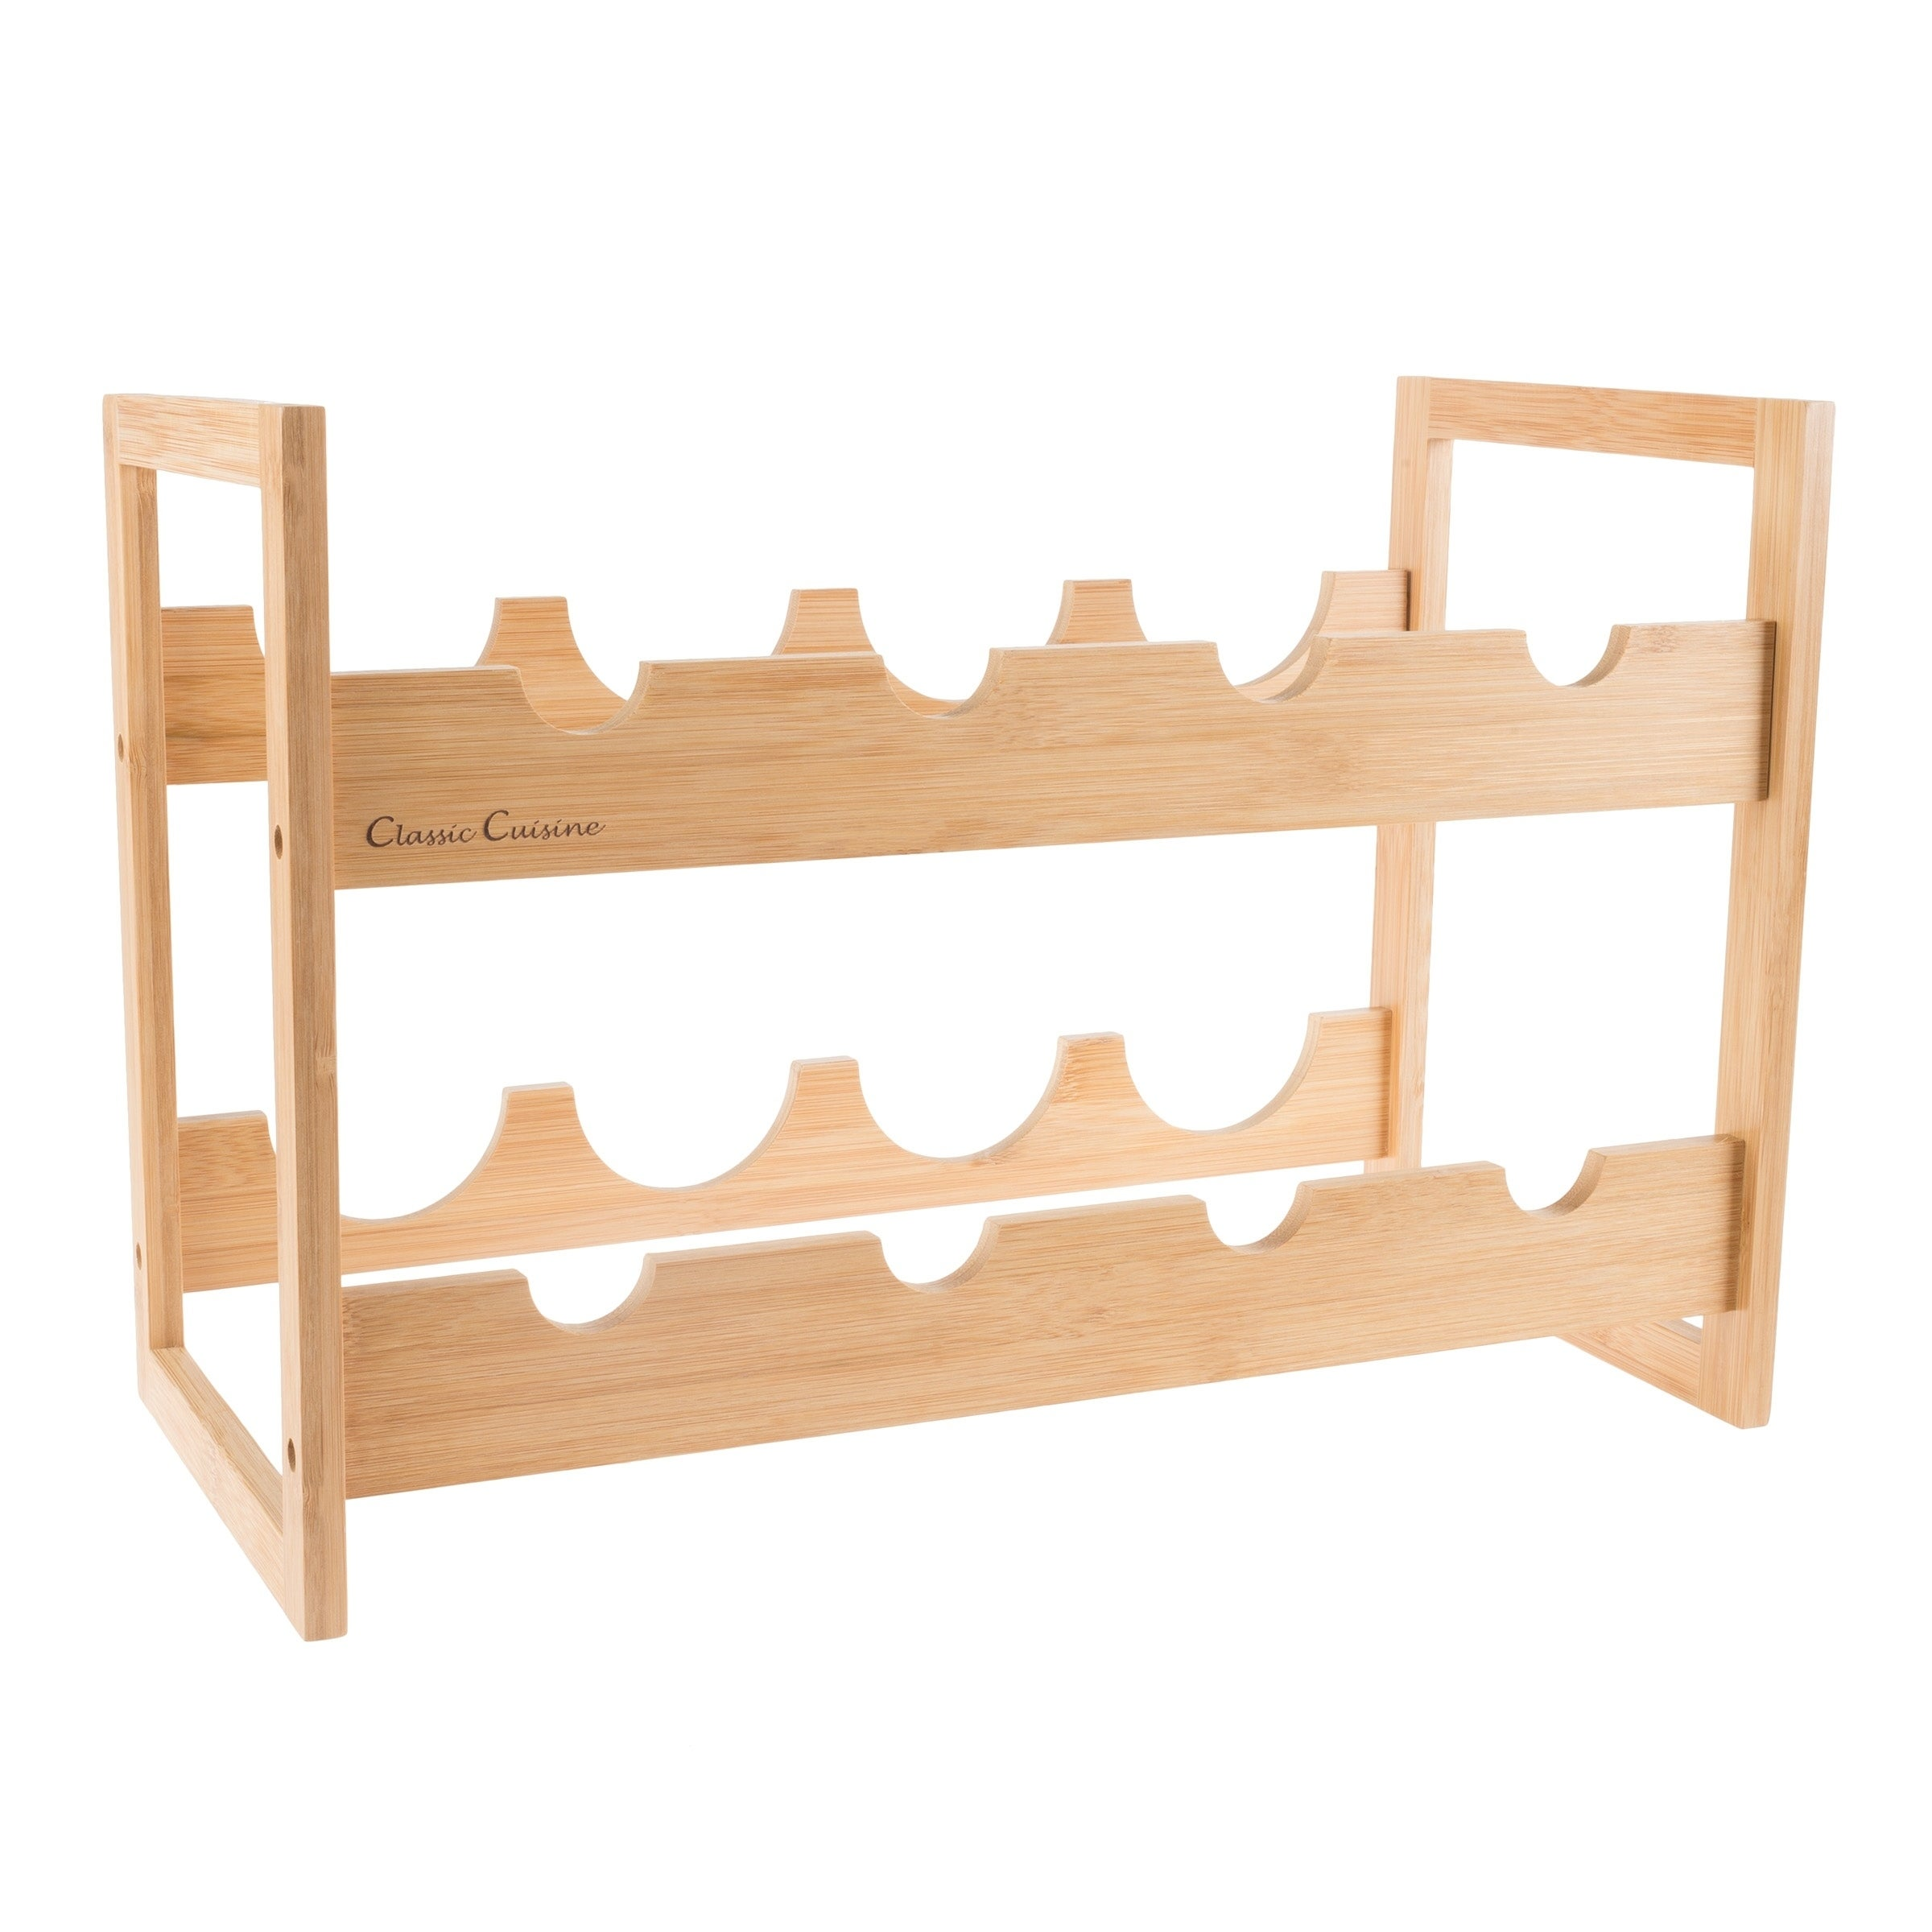 Shop Bamboo Wine Rack 8 Bottle Tabletop By Classic Cuisine   On Sale   Free  Shipping On Orders Over $45   Overstock.com   21485356